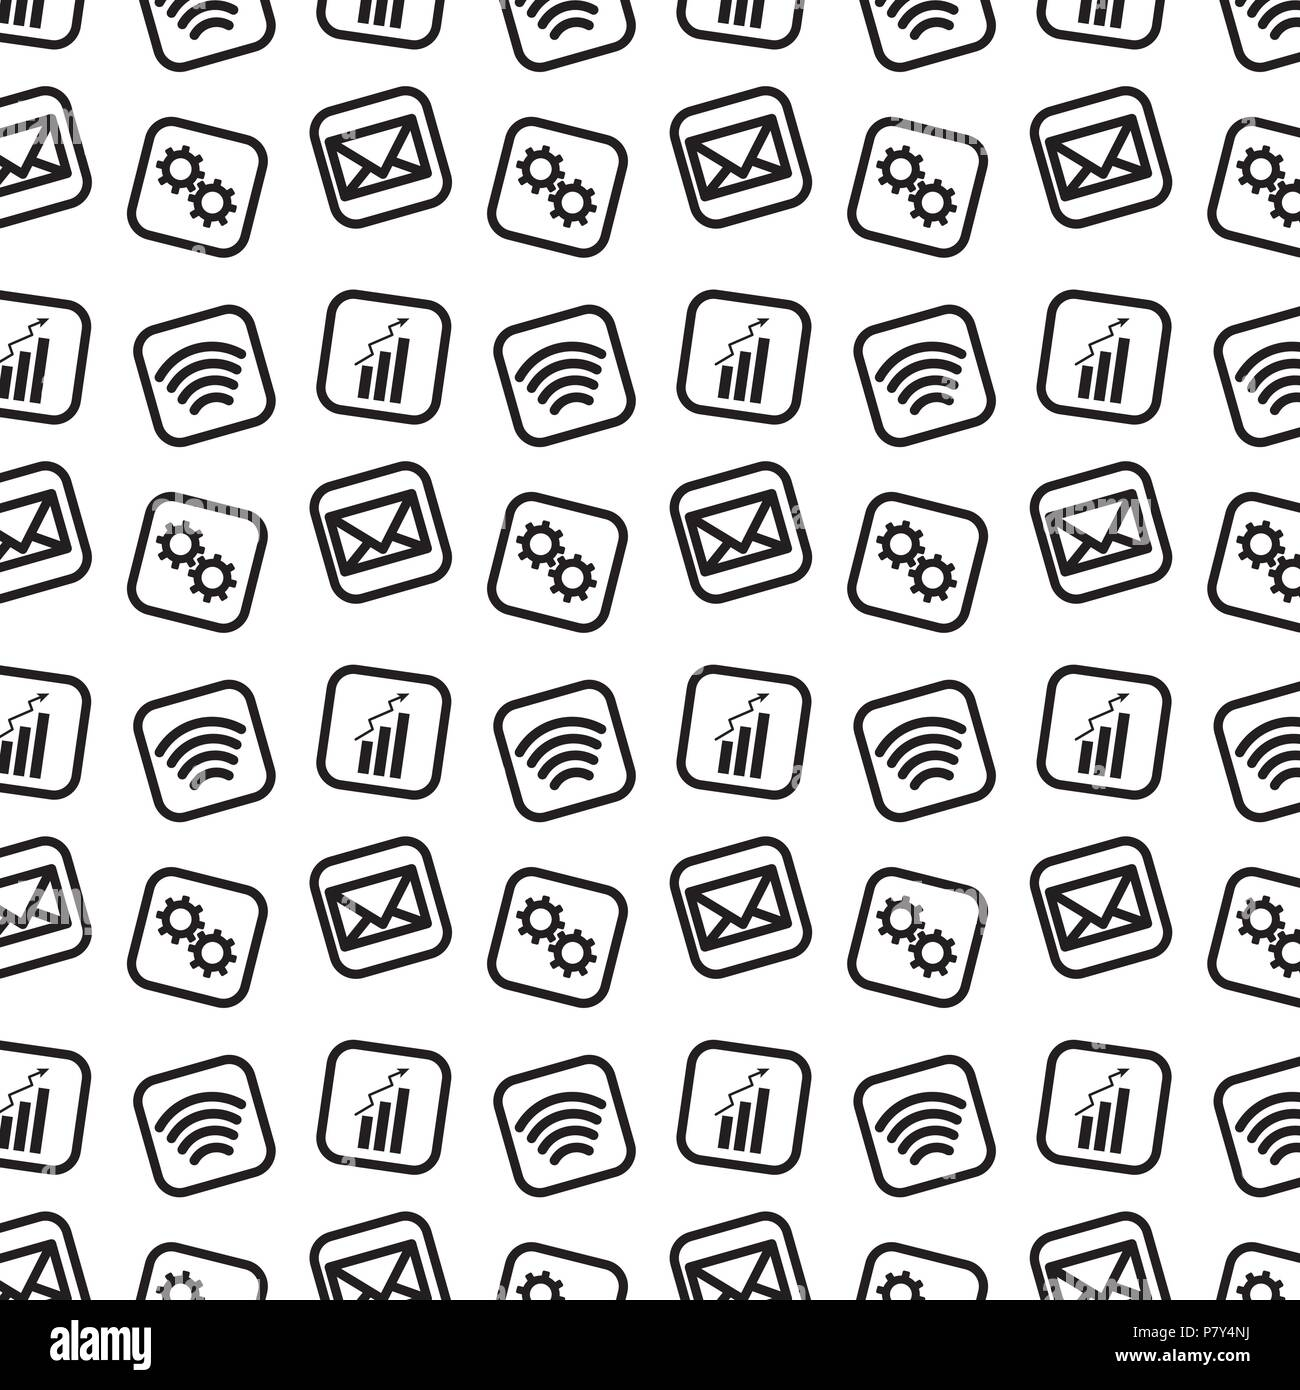 Line Social Digital Apps Icons Background